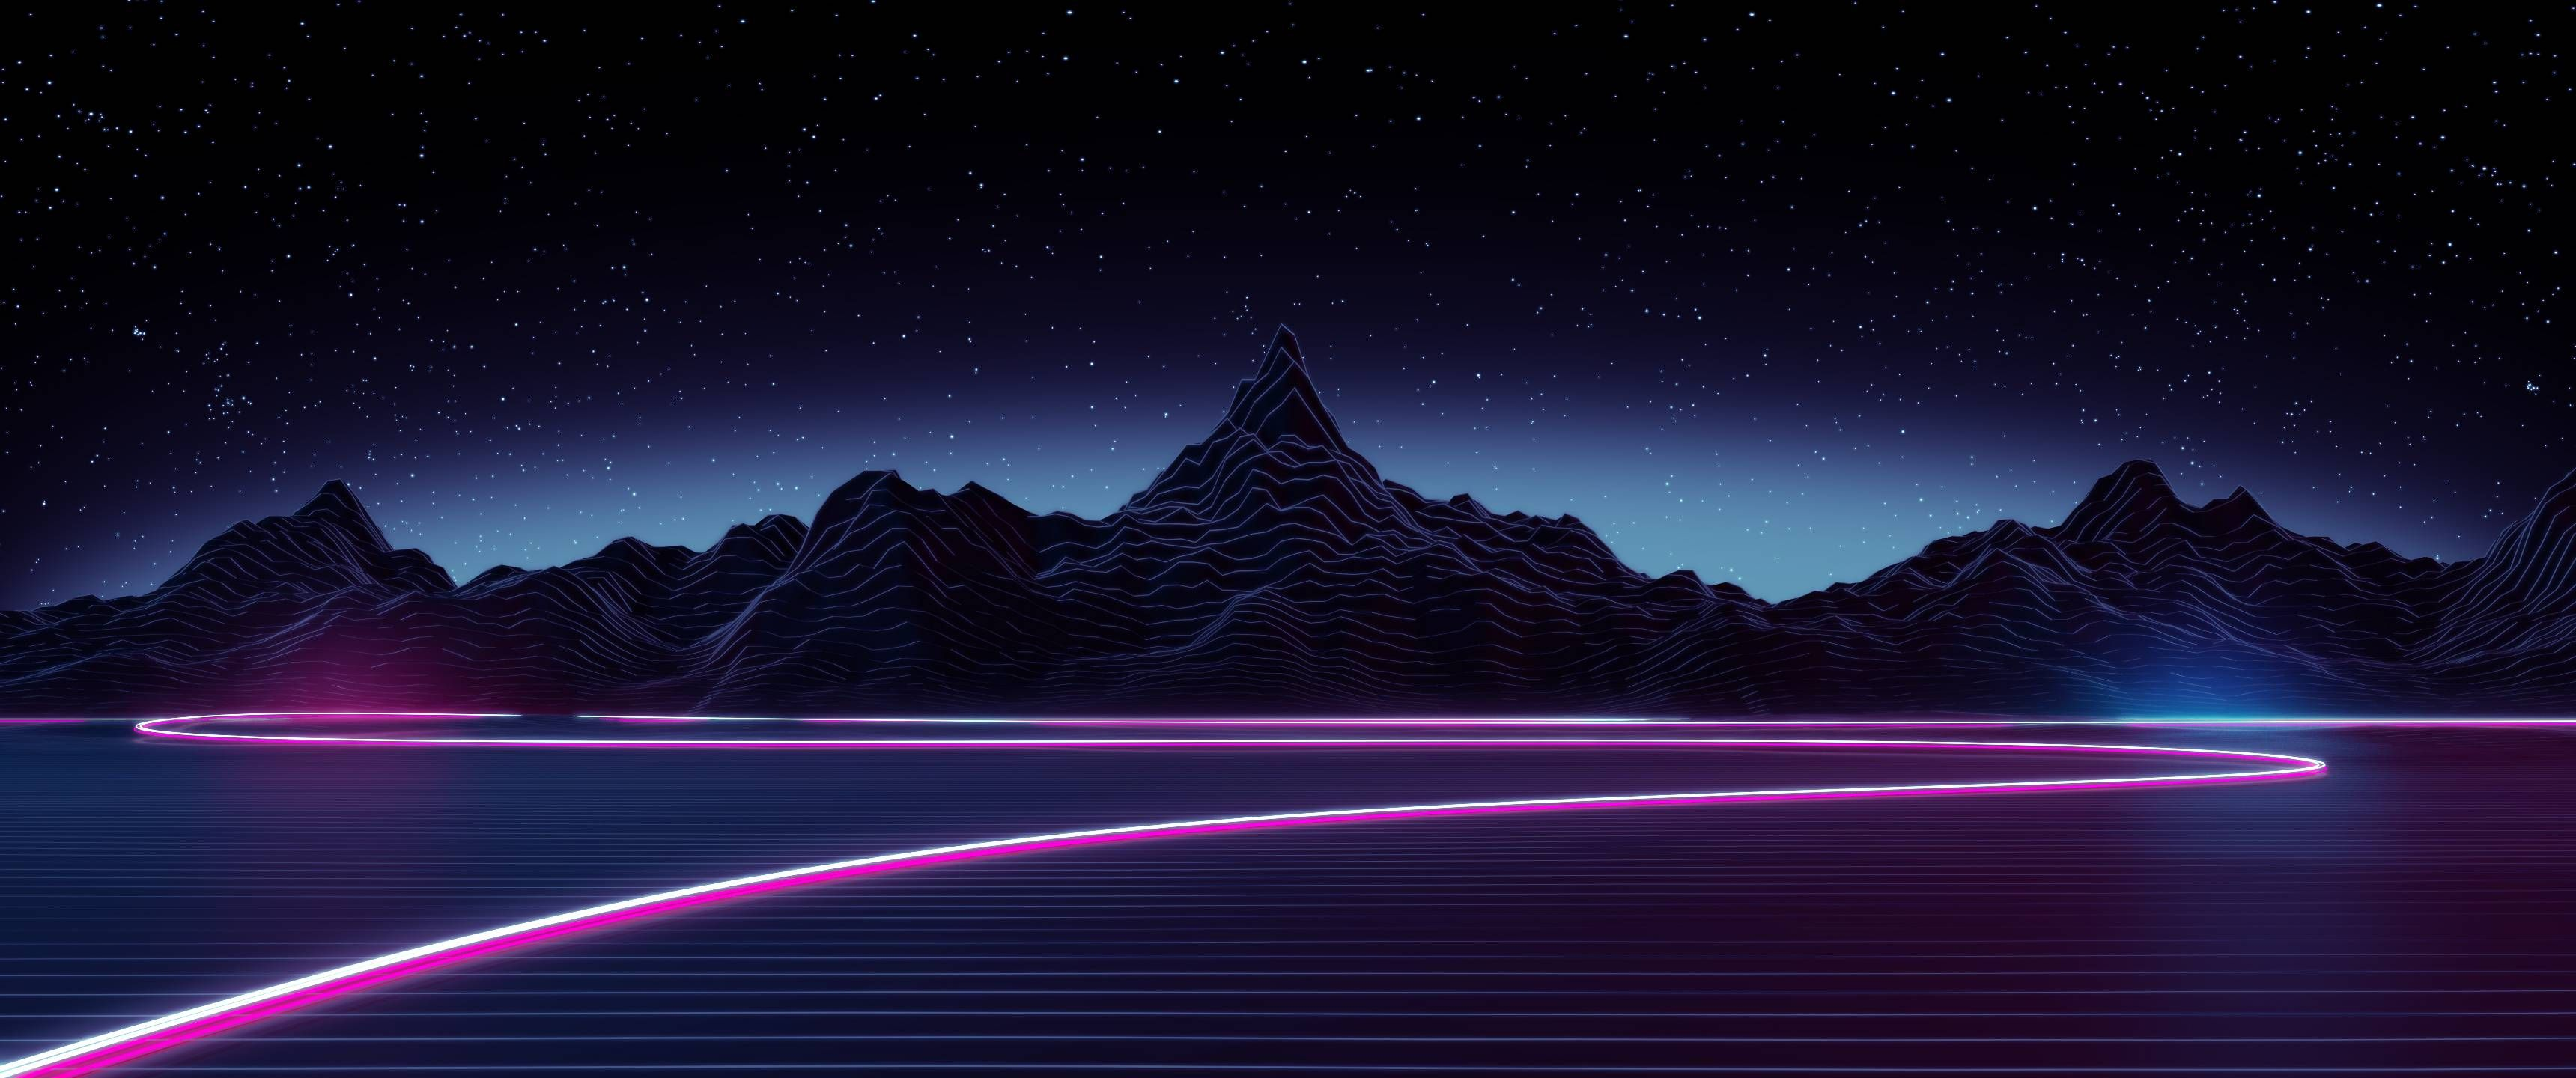 80s 4k Wallpaper Pack Album On Imgur Vaporwave Wallpaper Neon Wallpaper Aesthetic Wallpapers